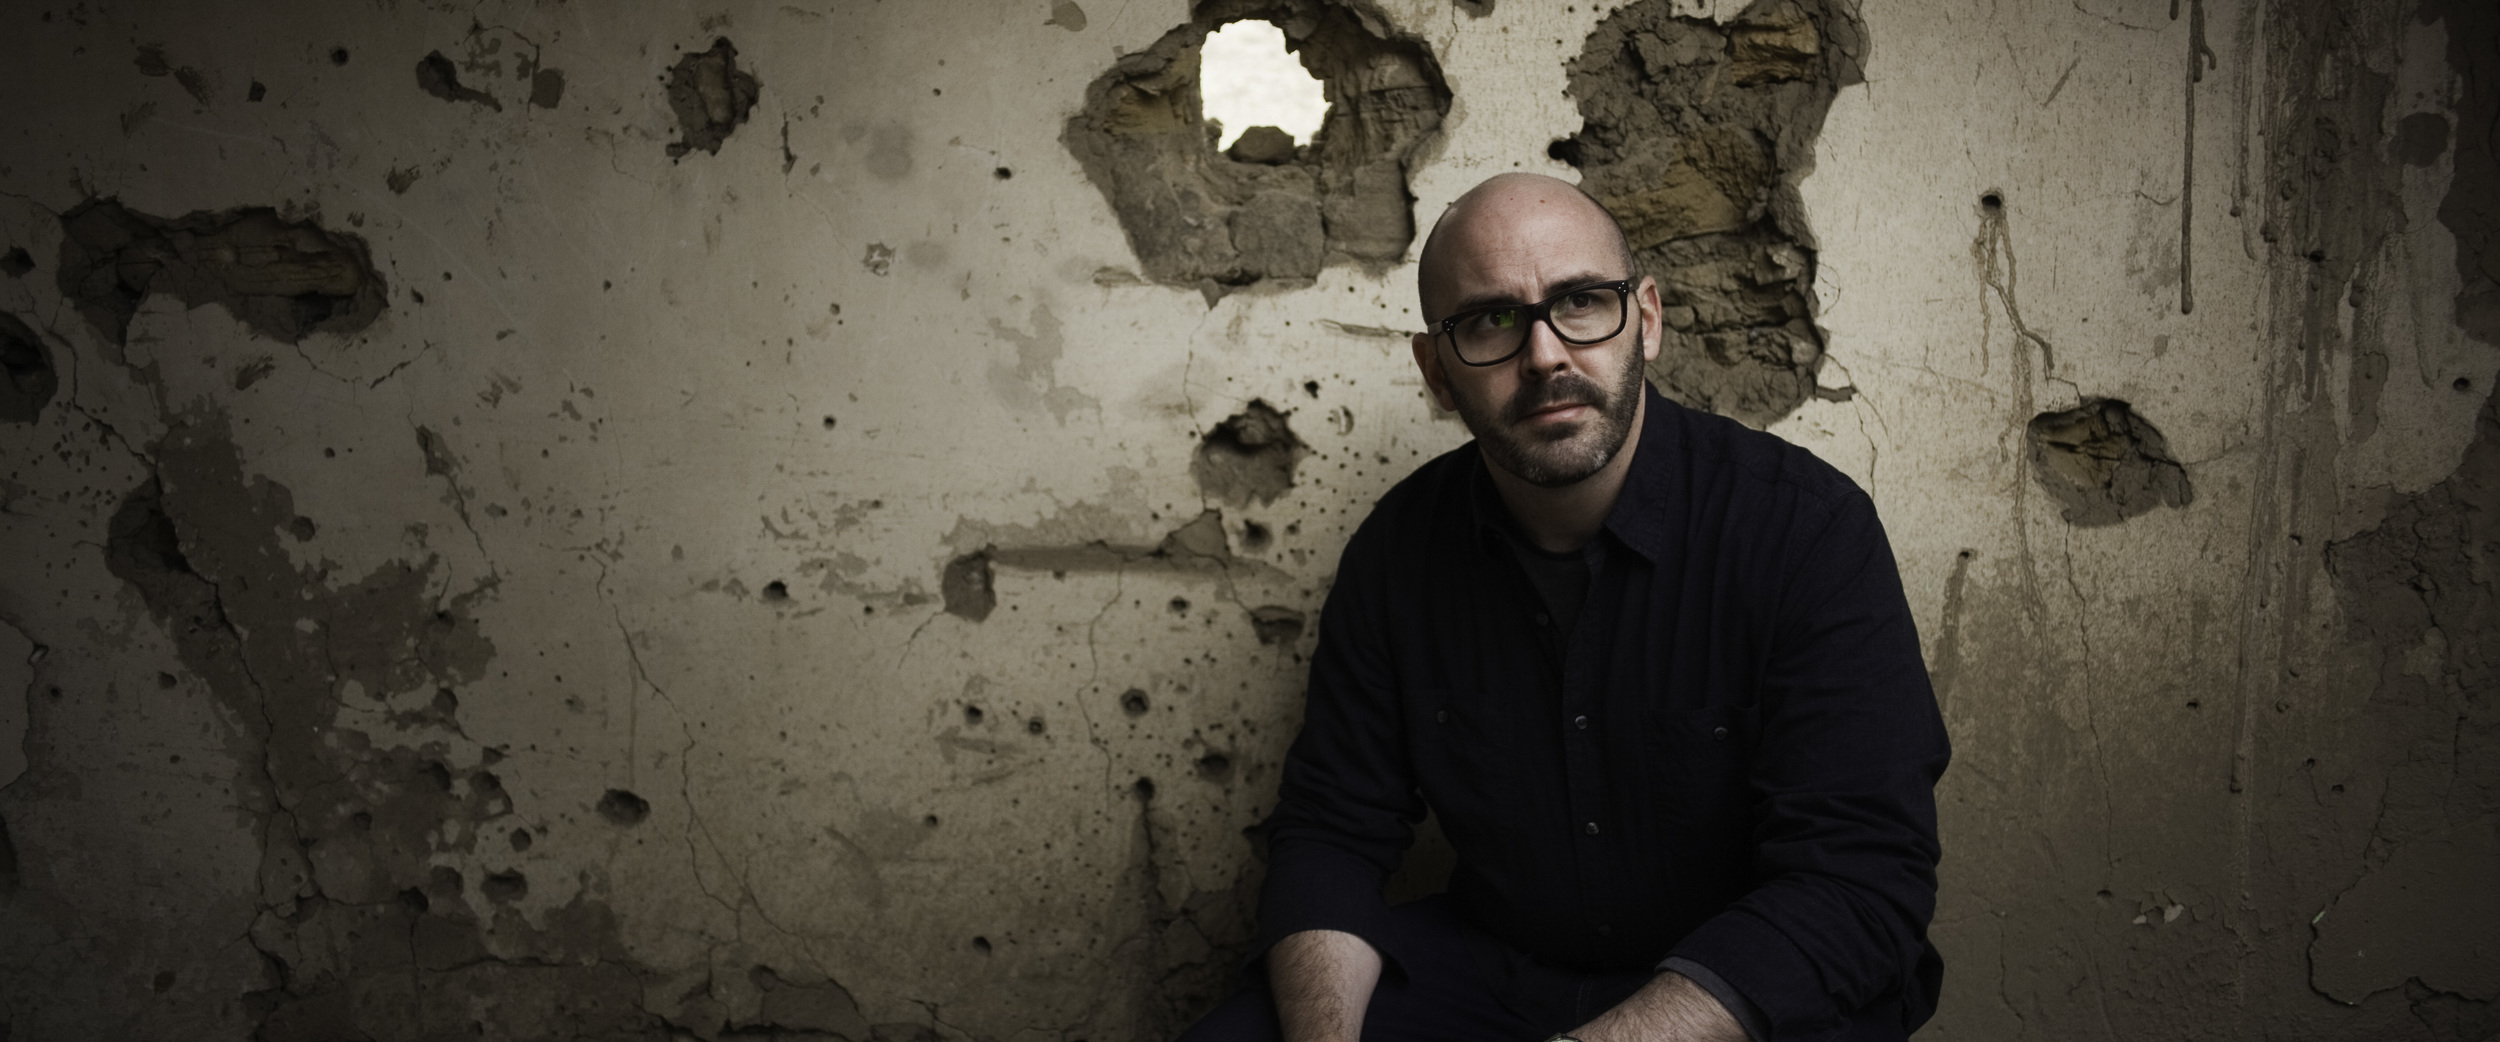 Director Jesse Gustafson poses against a war-torn wall